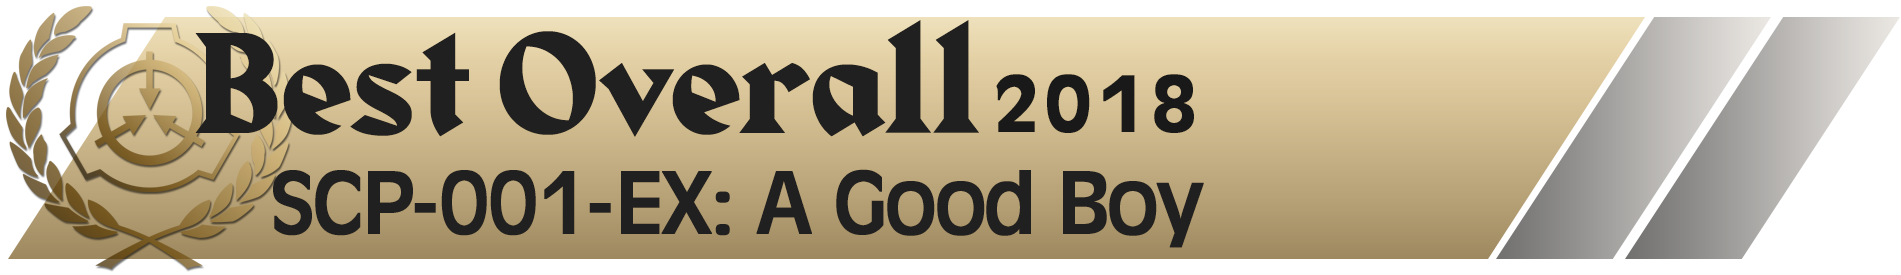 2018bestoverall.png